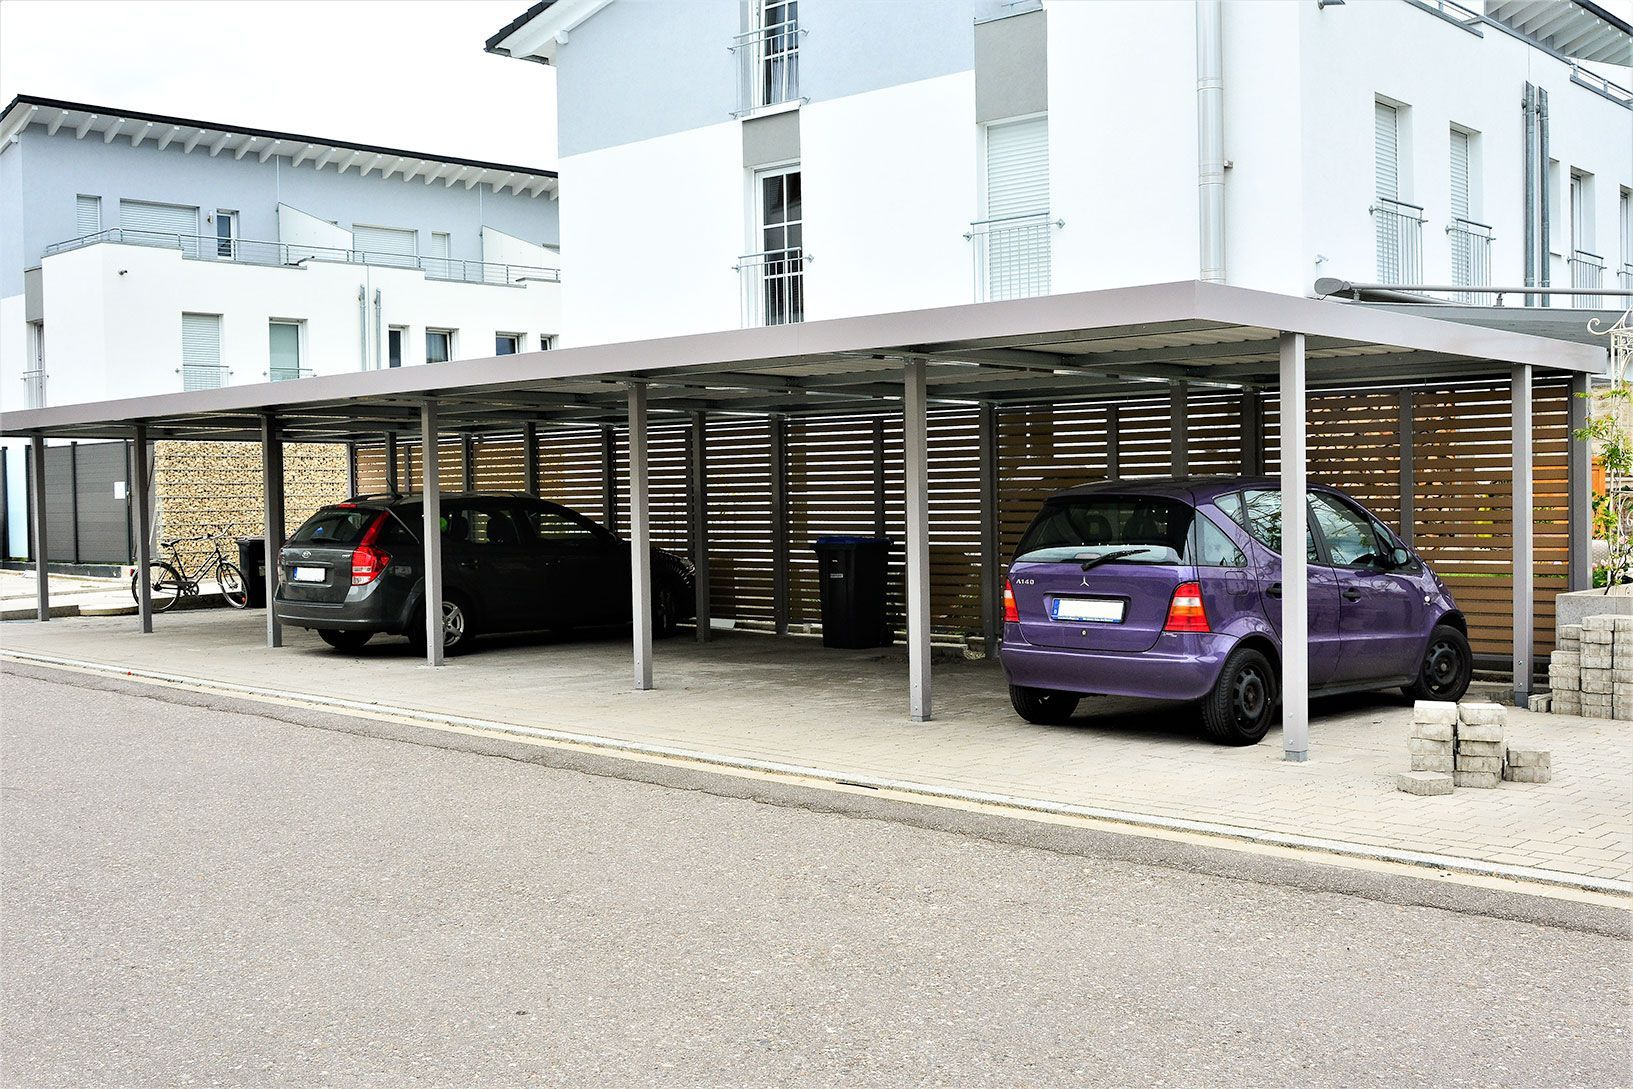 Carport Metal Buildings 2020 in 2020 Metal buildings